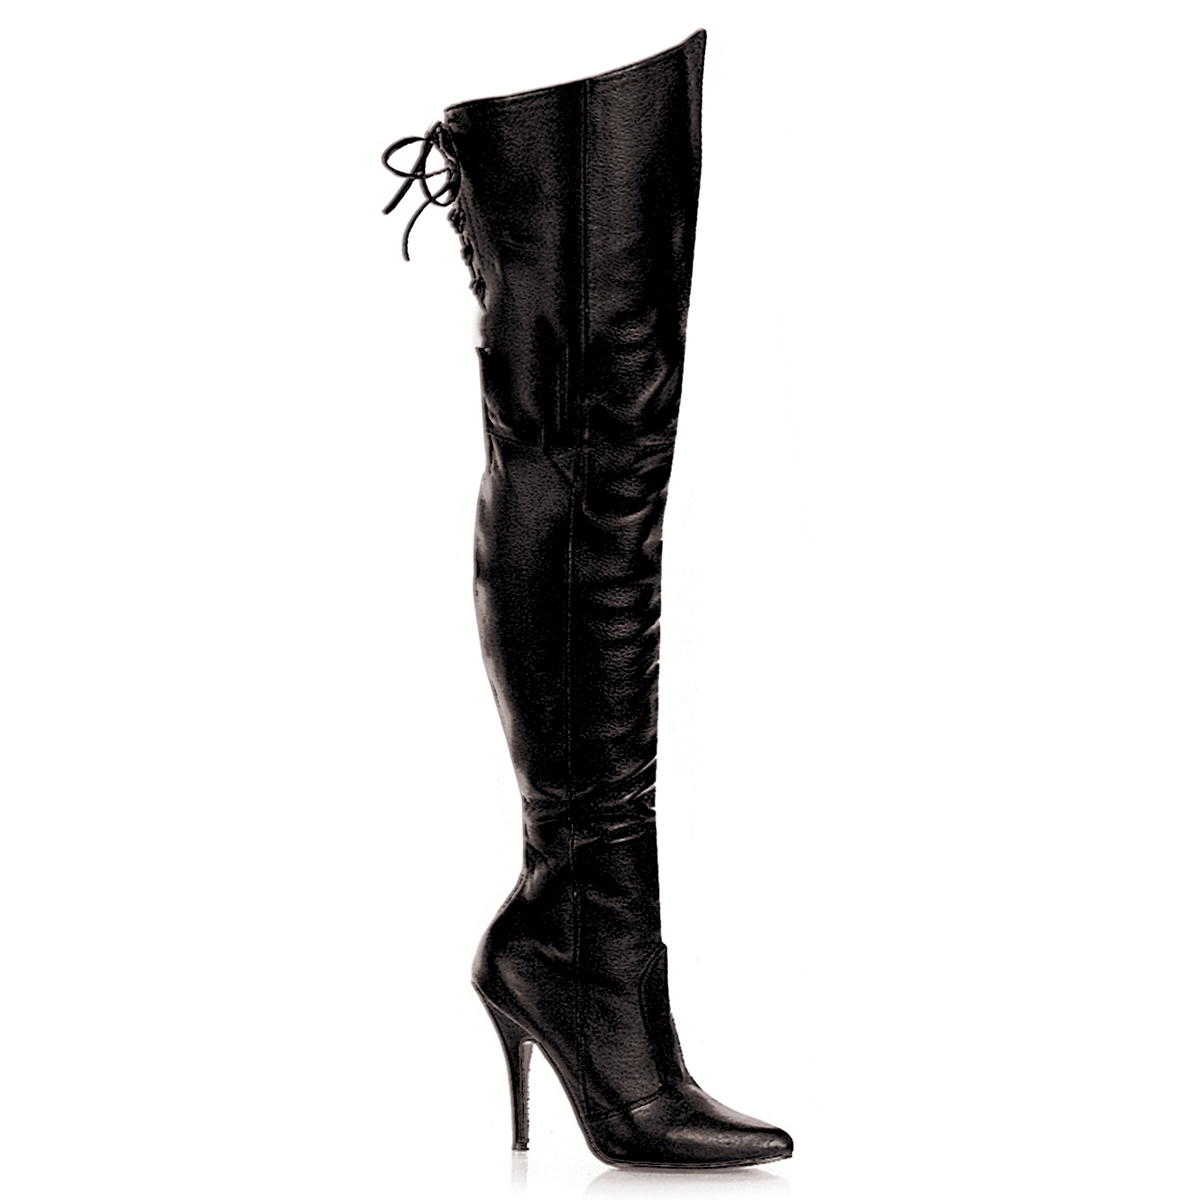 Overknee Boots SEDUCE 3000WC (Wide Shaft) Faux Leather Black